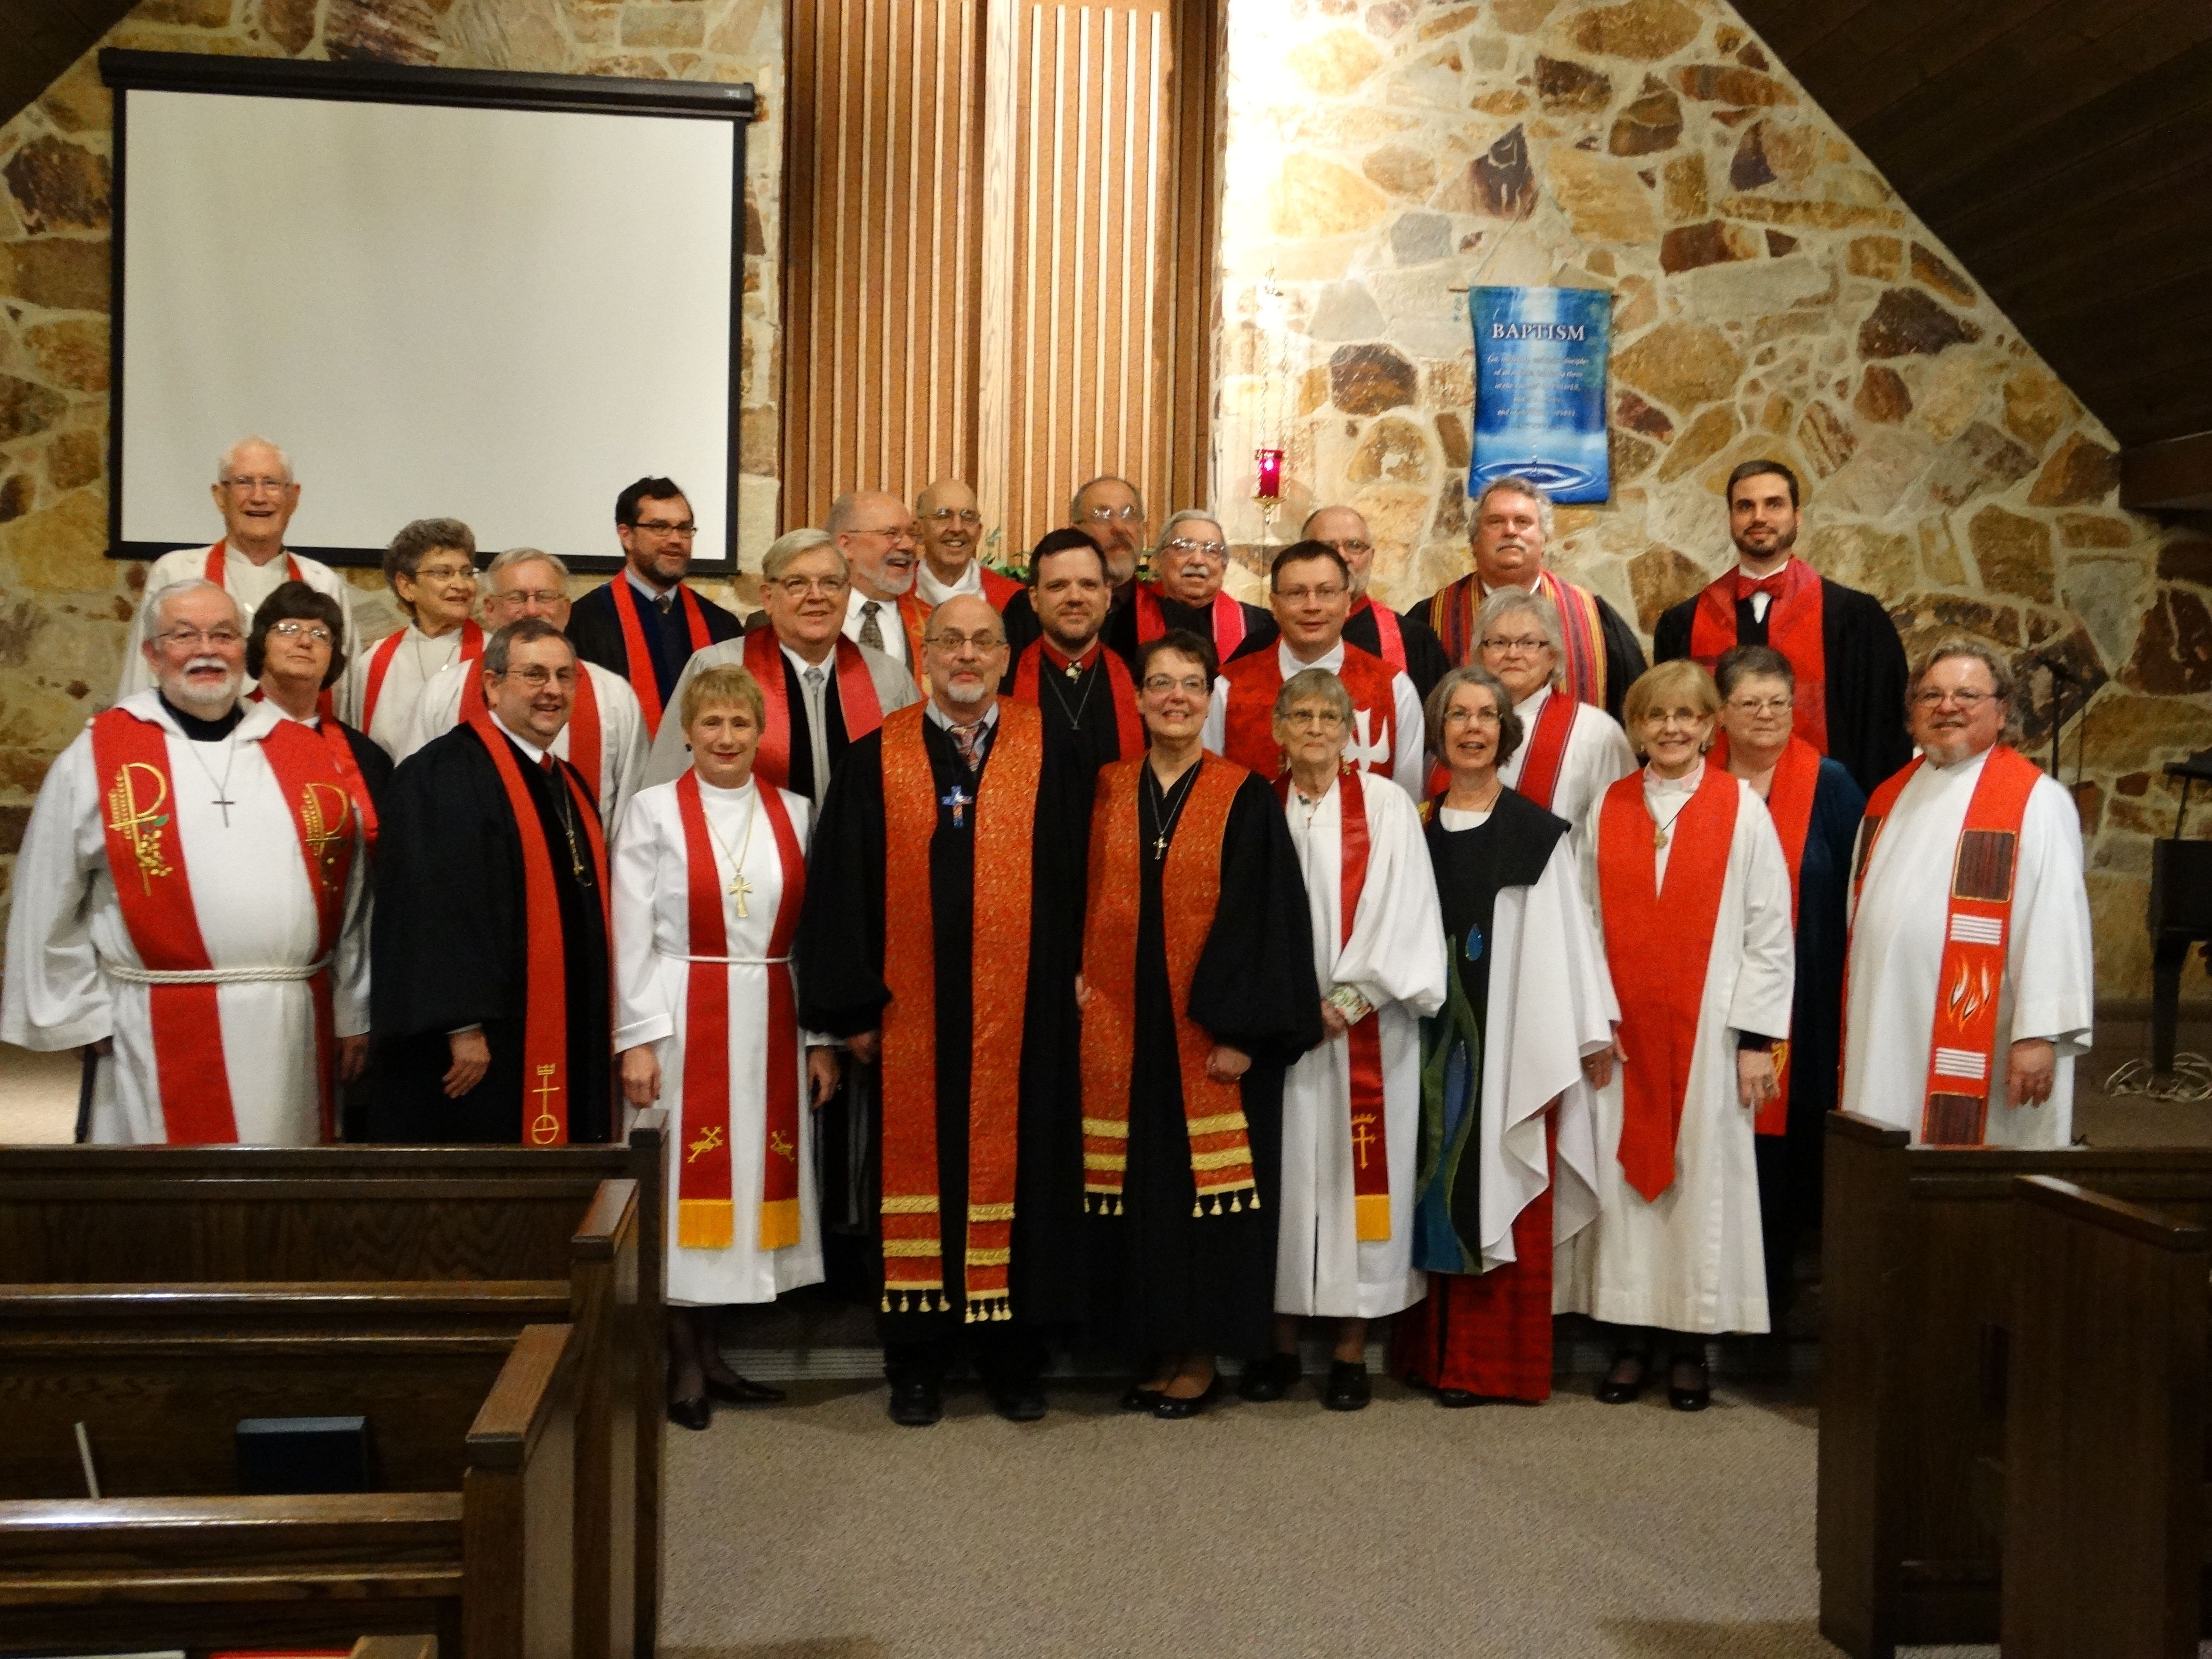 Les Parmenter's ordination